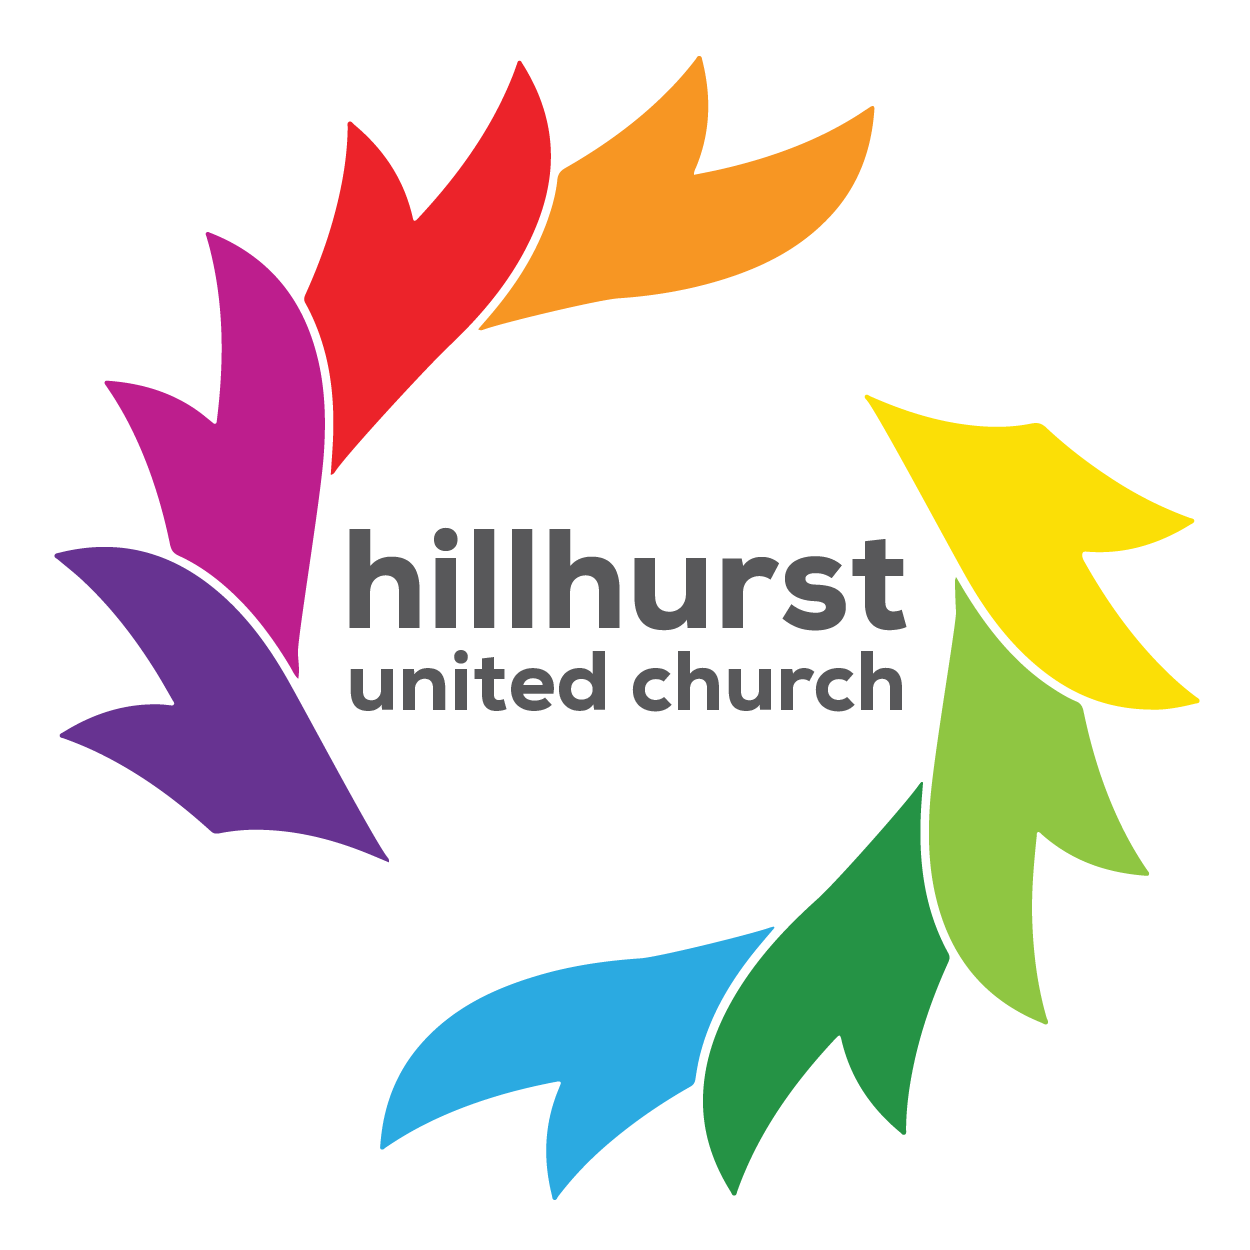 Hillhurst United Church